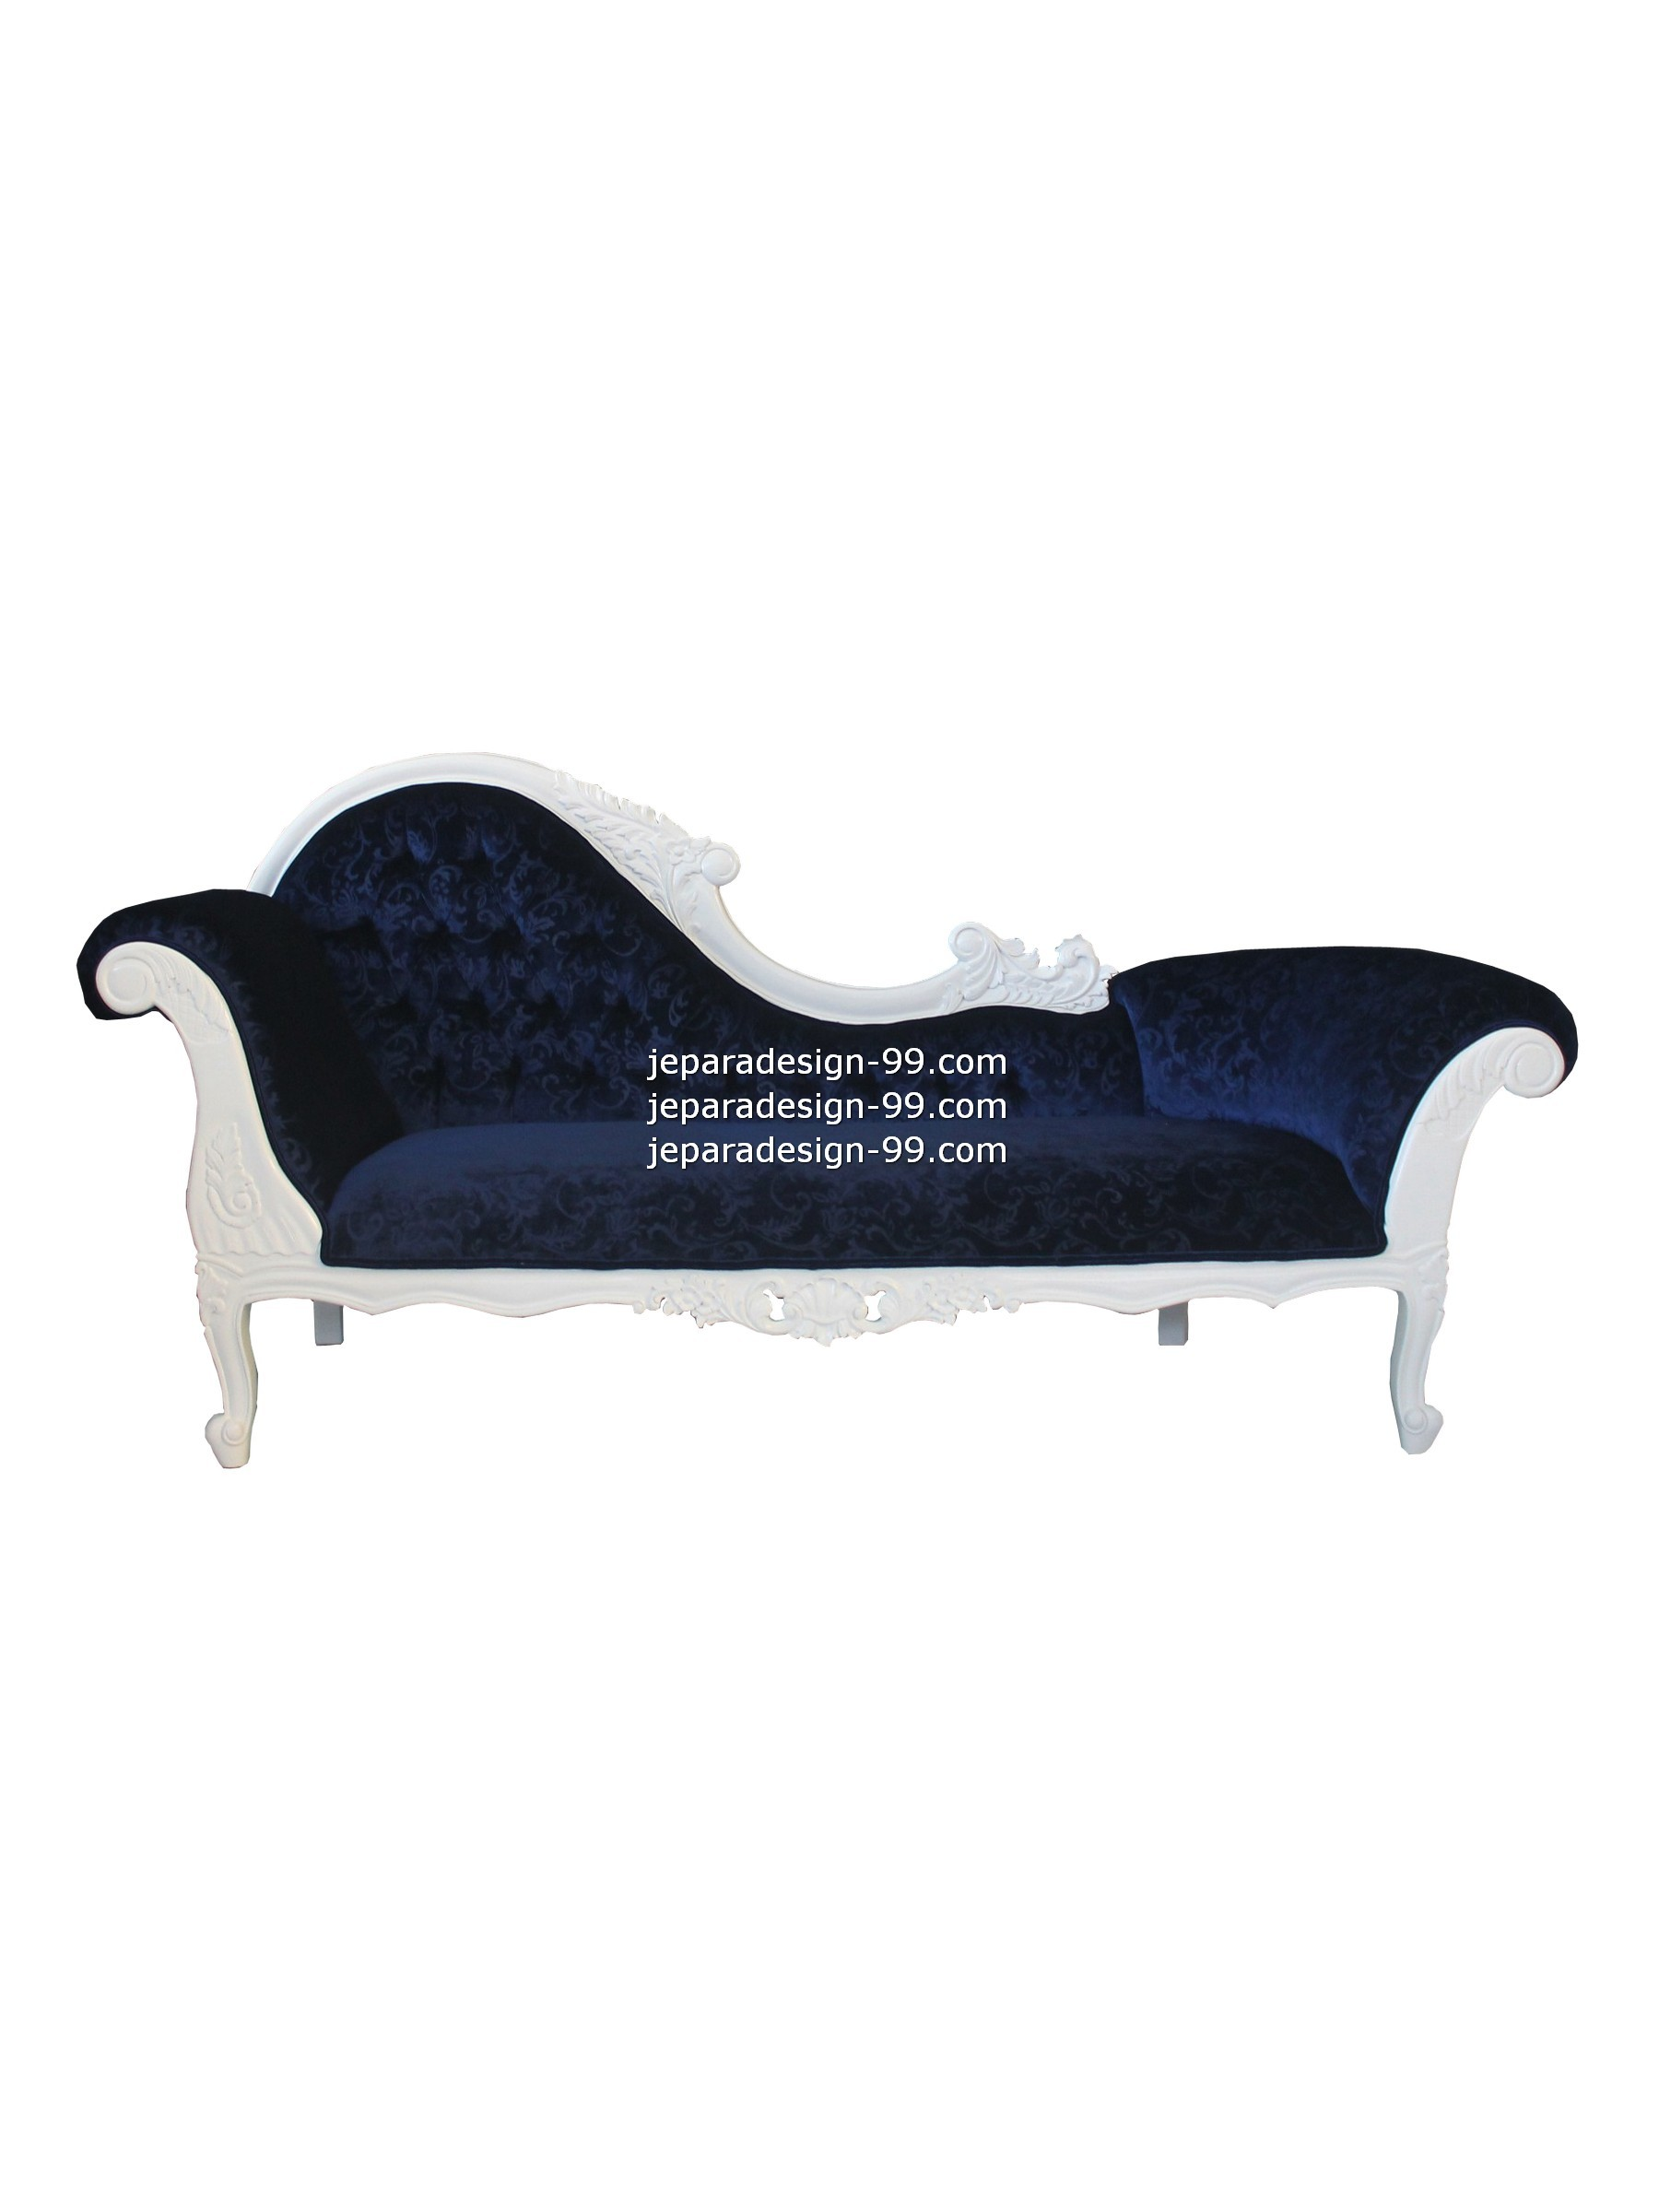 French Chaise Classic French Chaise Lounge By Jepara Design 99